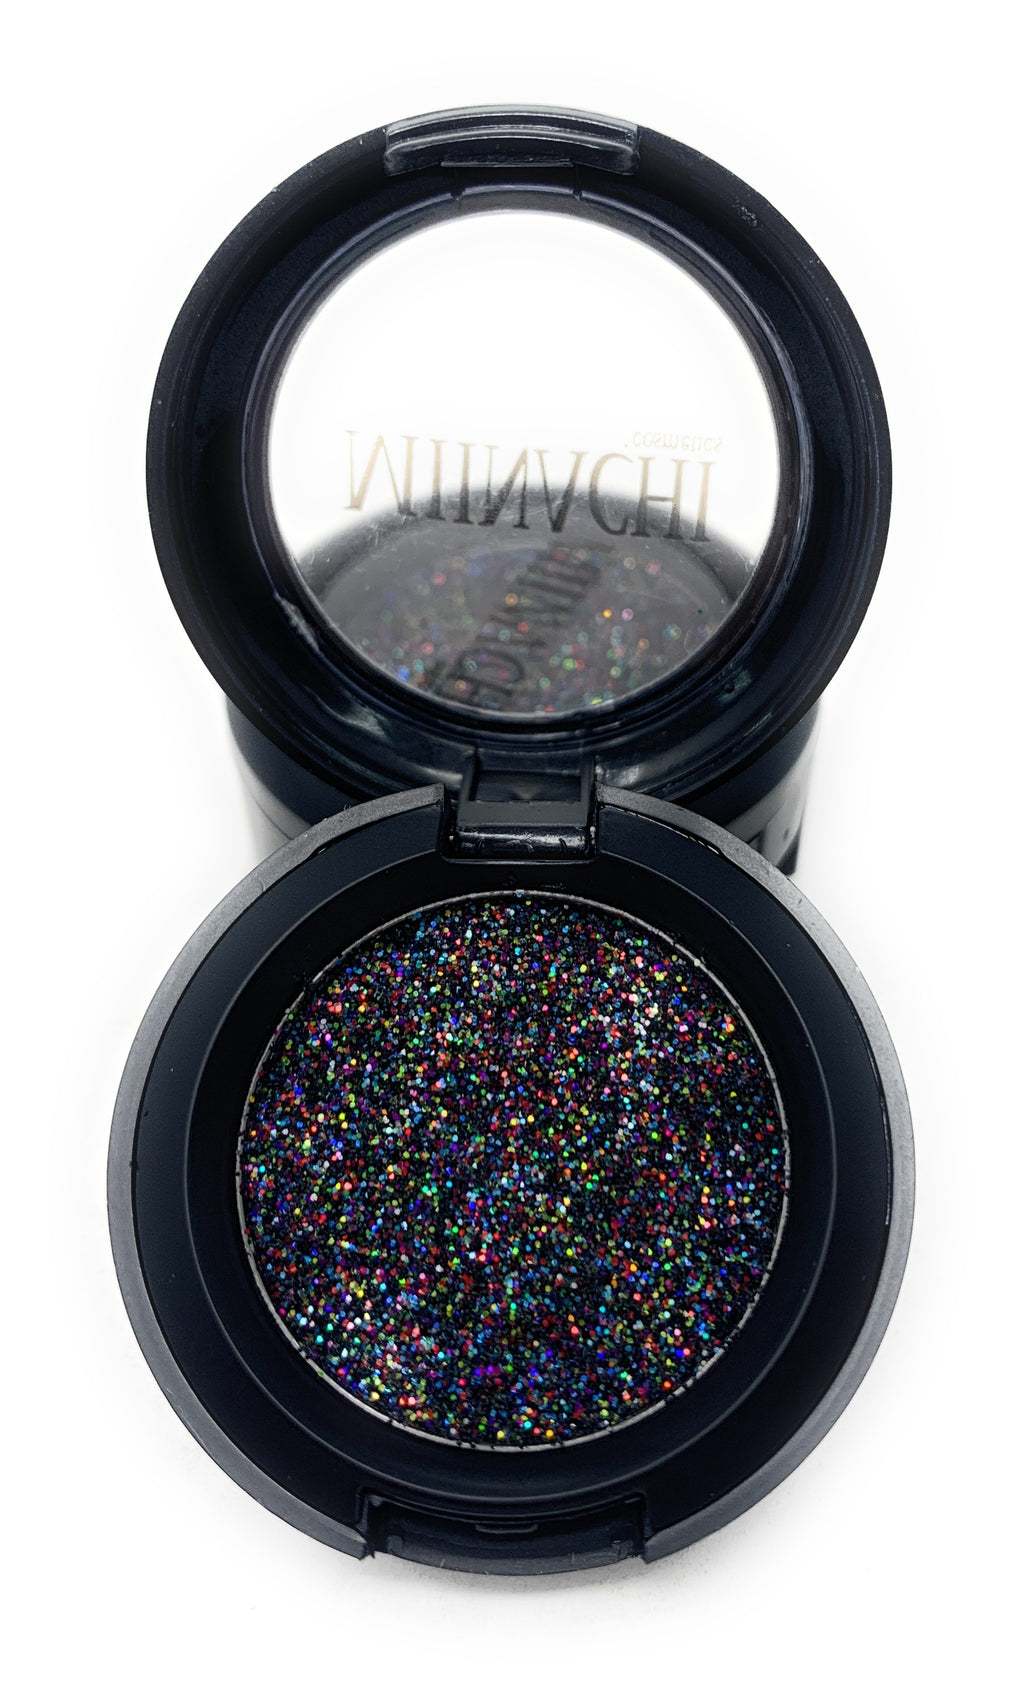 Single Pressed Glitter in the shade Masquerade, No Glue Needed, In Compact, Pigmented, No Fall Out, Glitter, Cosmetic Grade Glitter